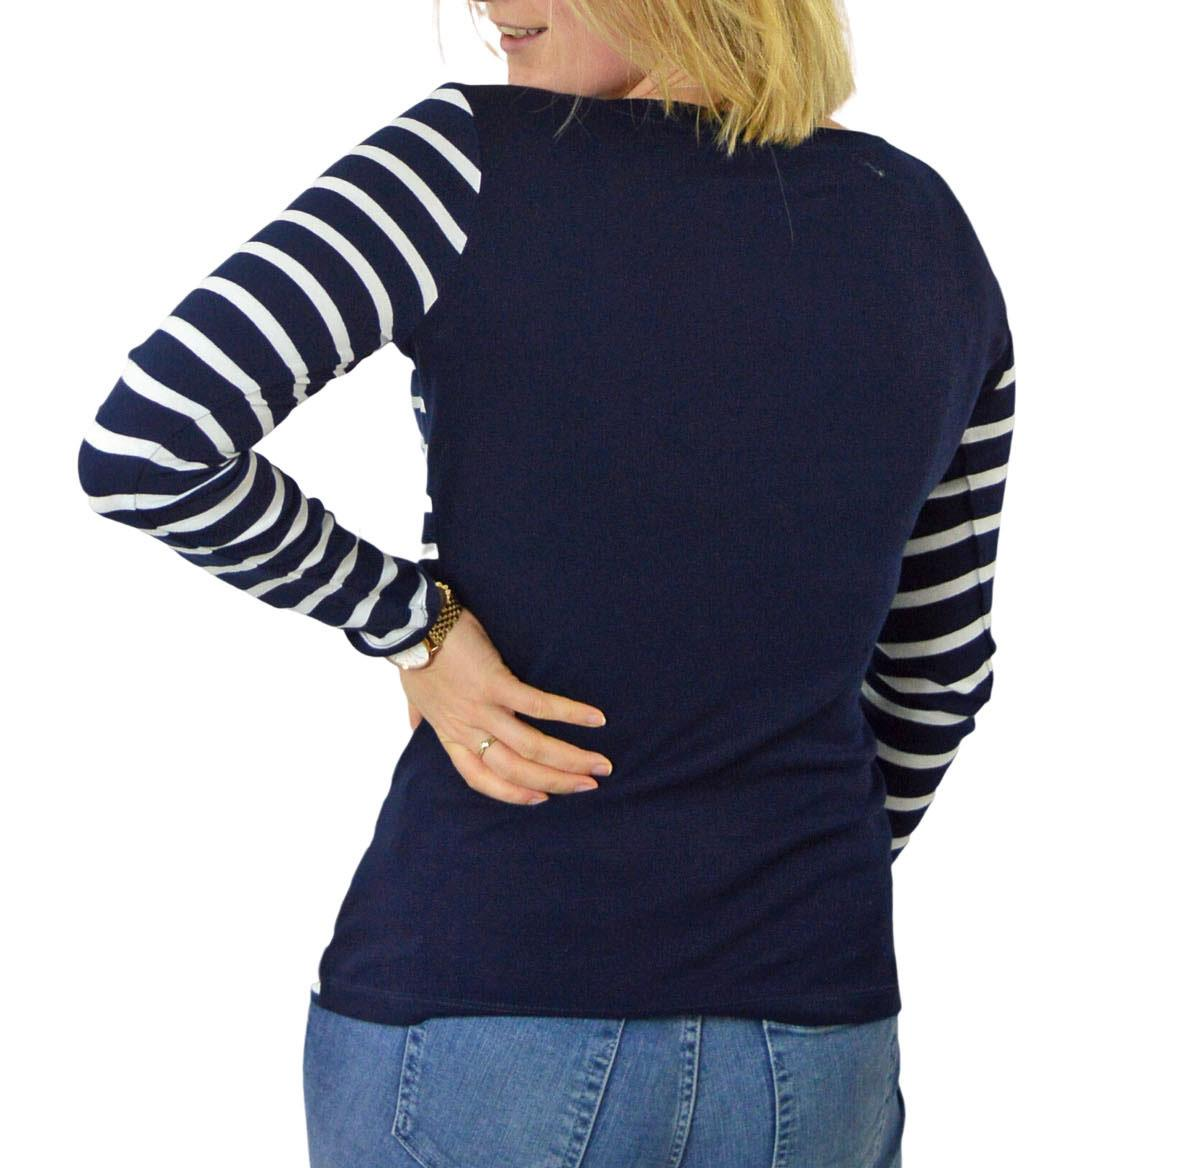 NEW-NEXT-Ladies-Black-or-Navy-White-Stripe-Long-Sleeve-T-Shirt-Top thumbnail 11